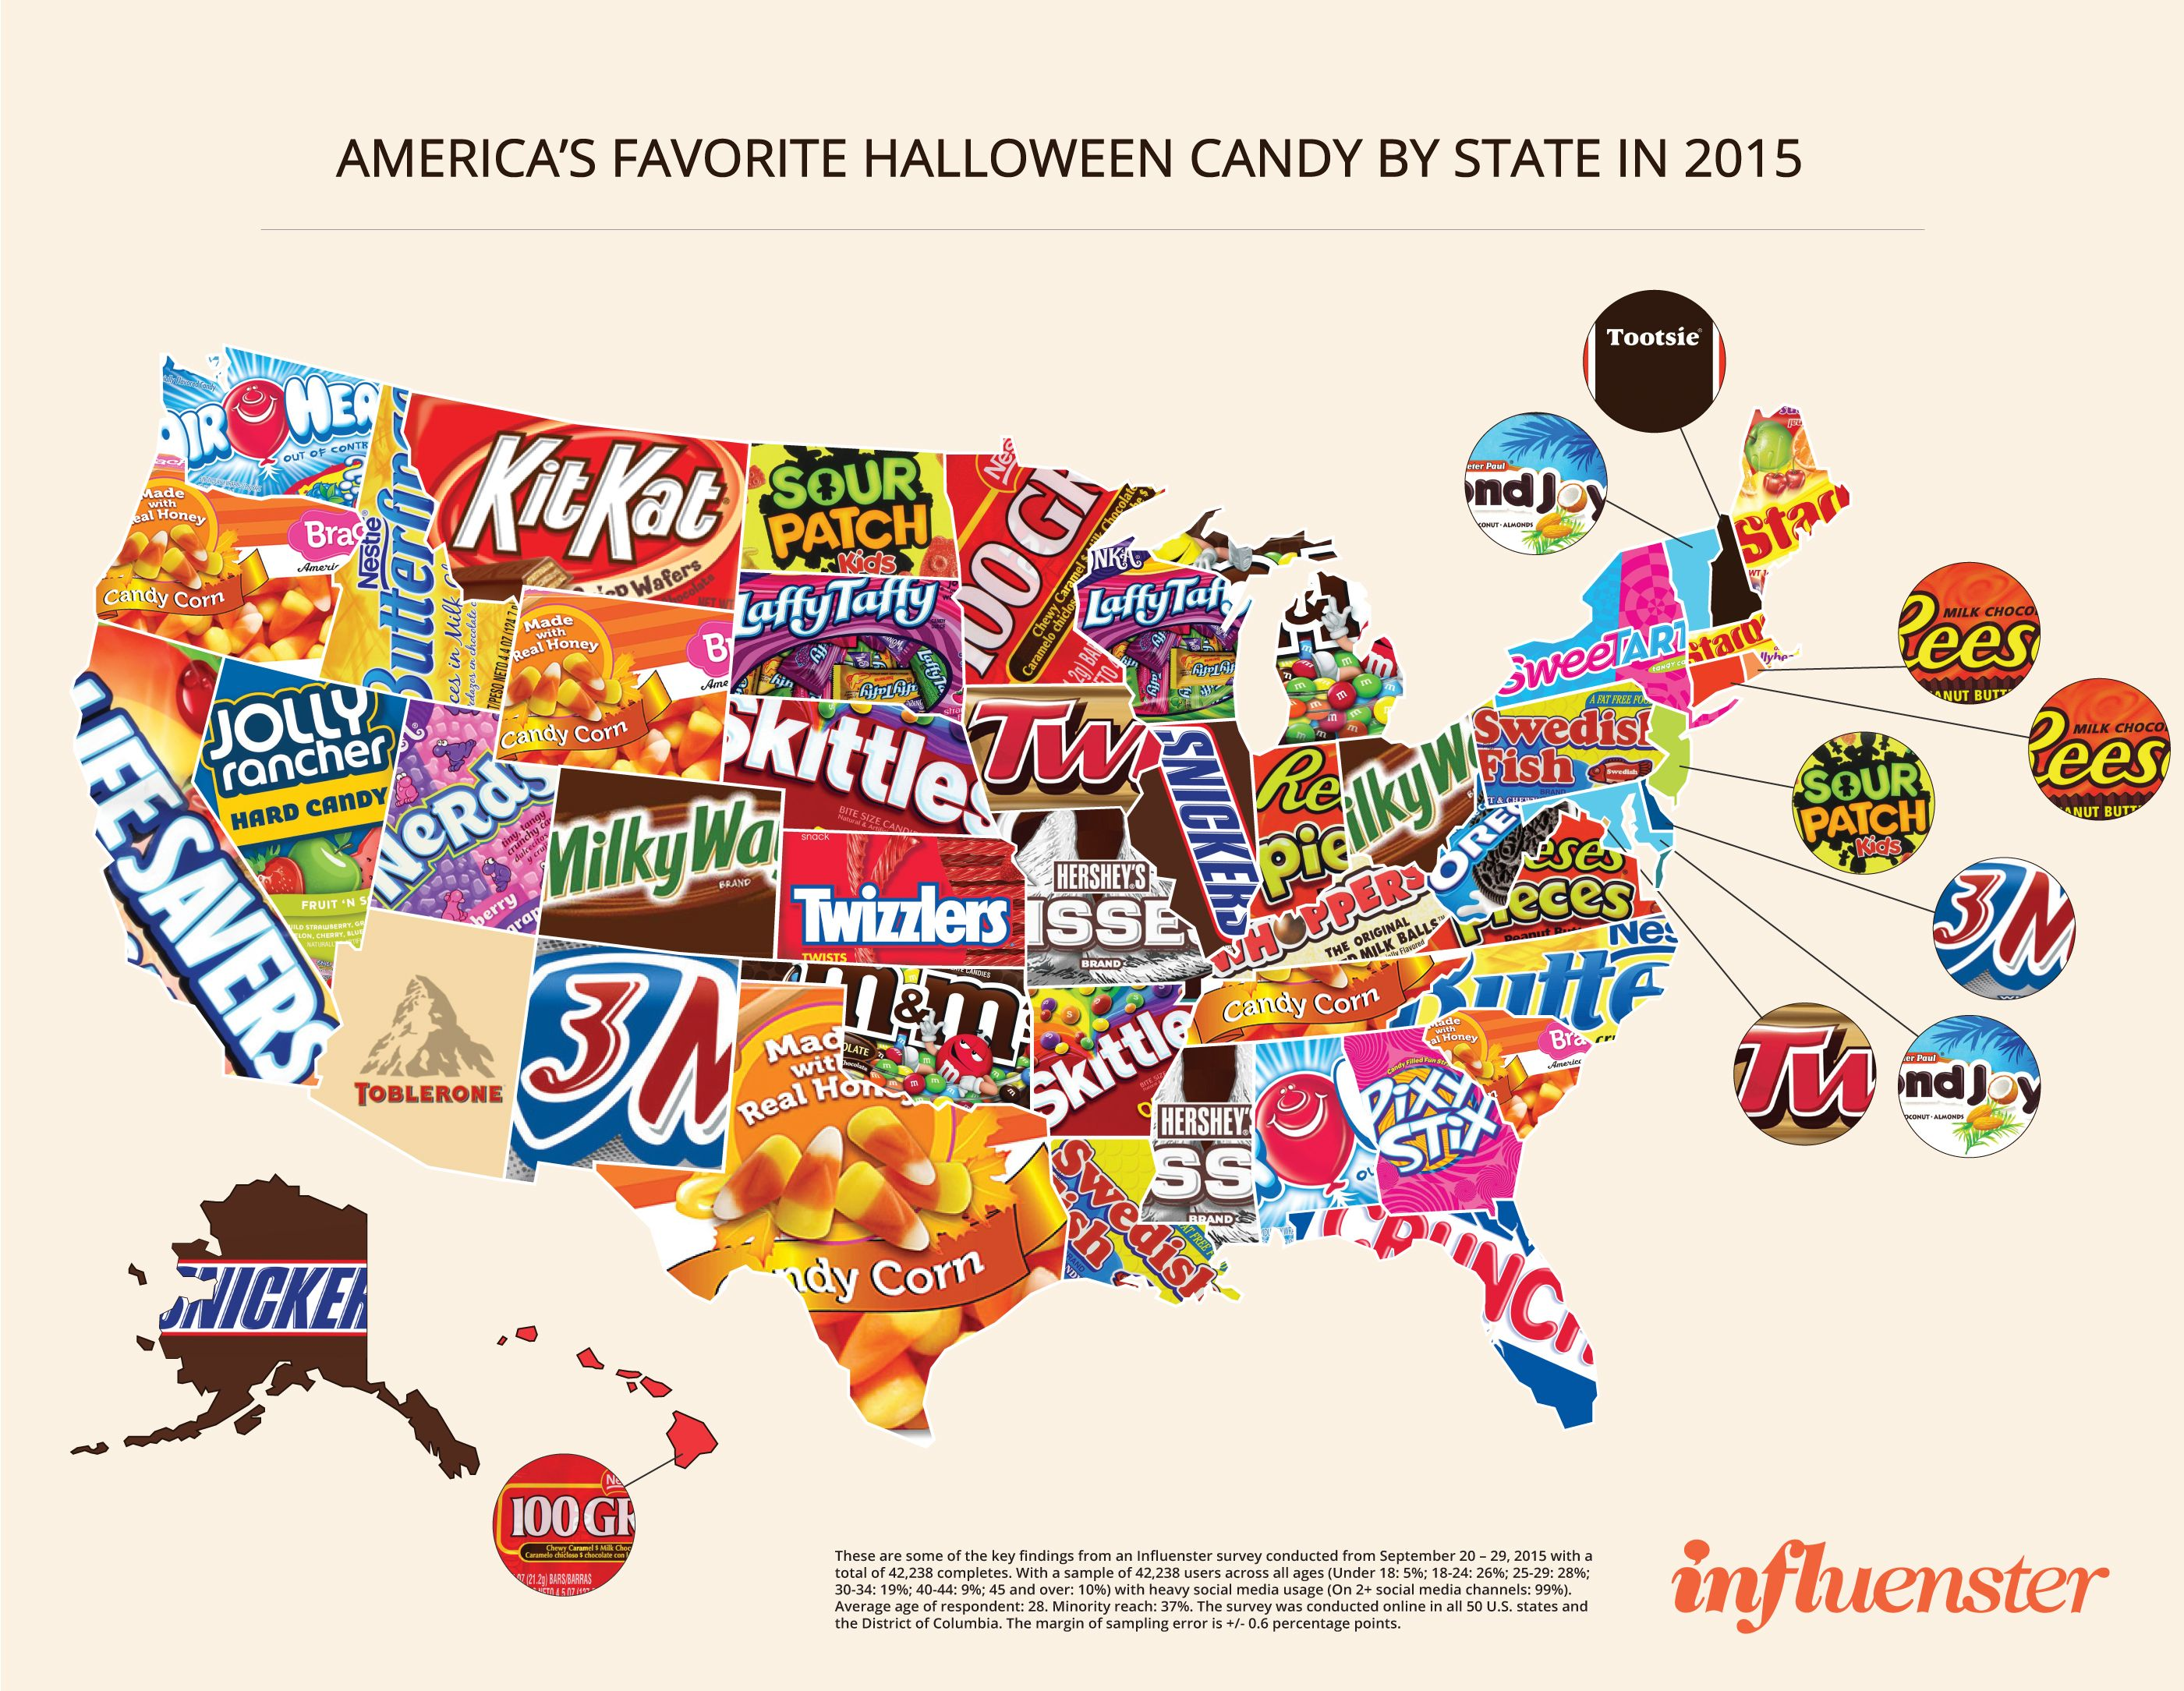 Halloween Candy By State 2020 America's Favorite Halloween Candy State By State | Best halloween